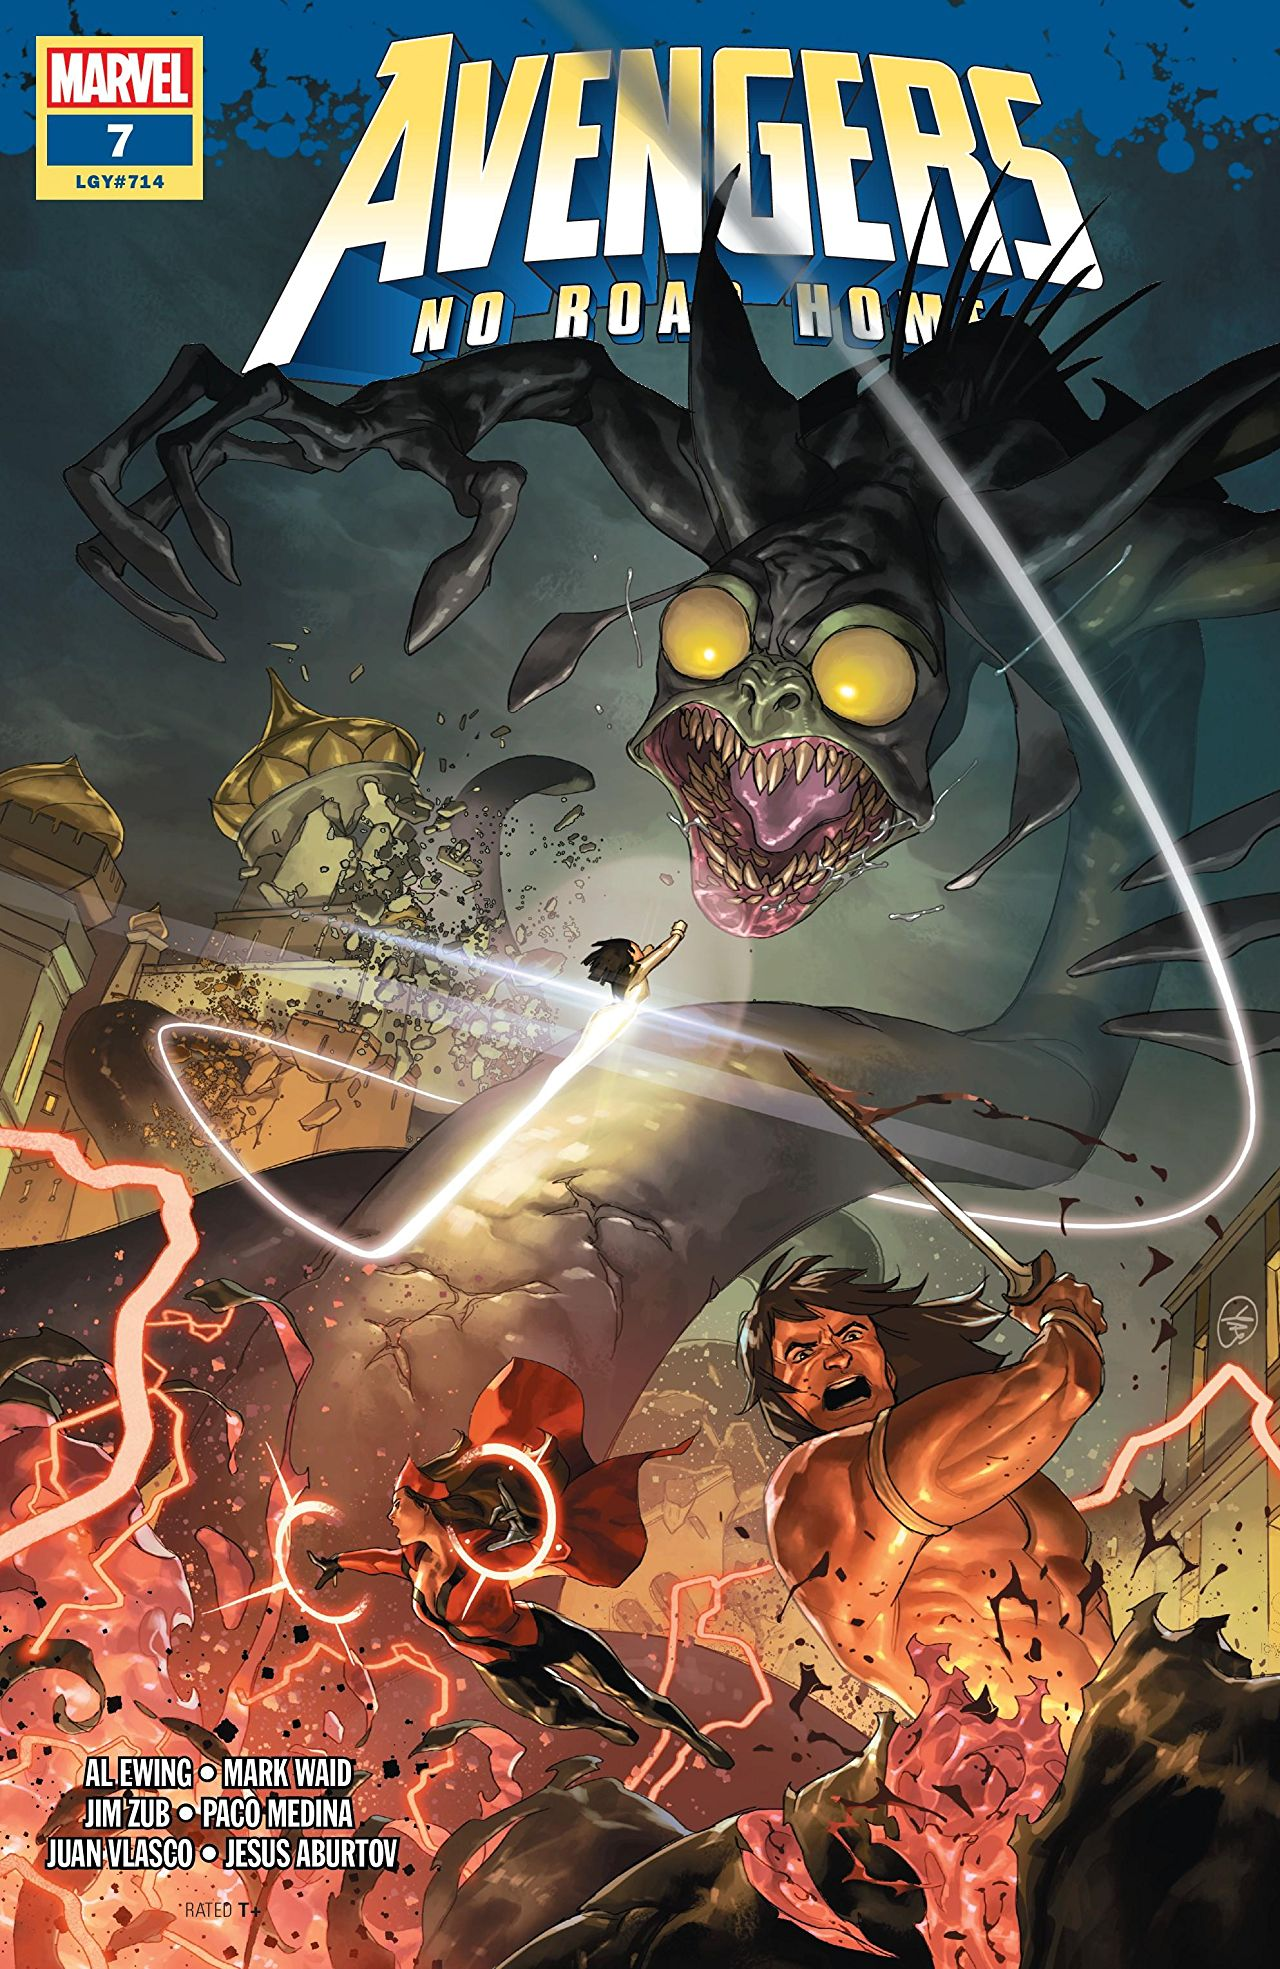 Marvel Preview: Avengers: No Road Home #7